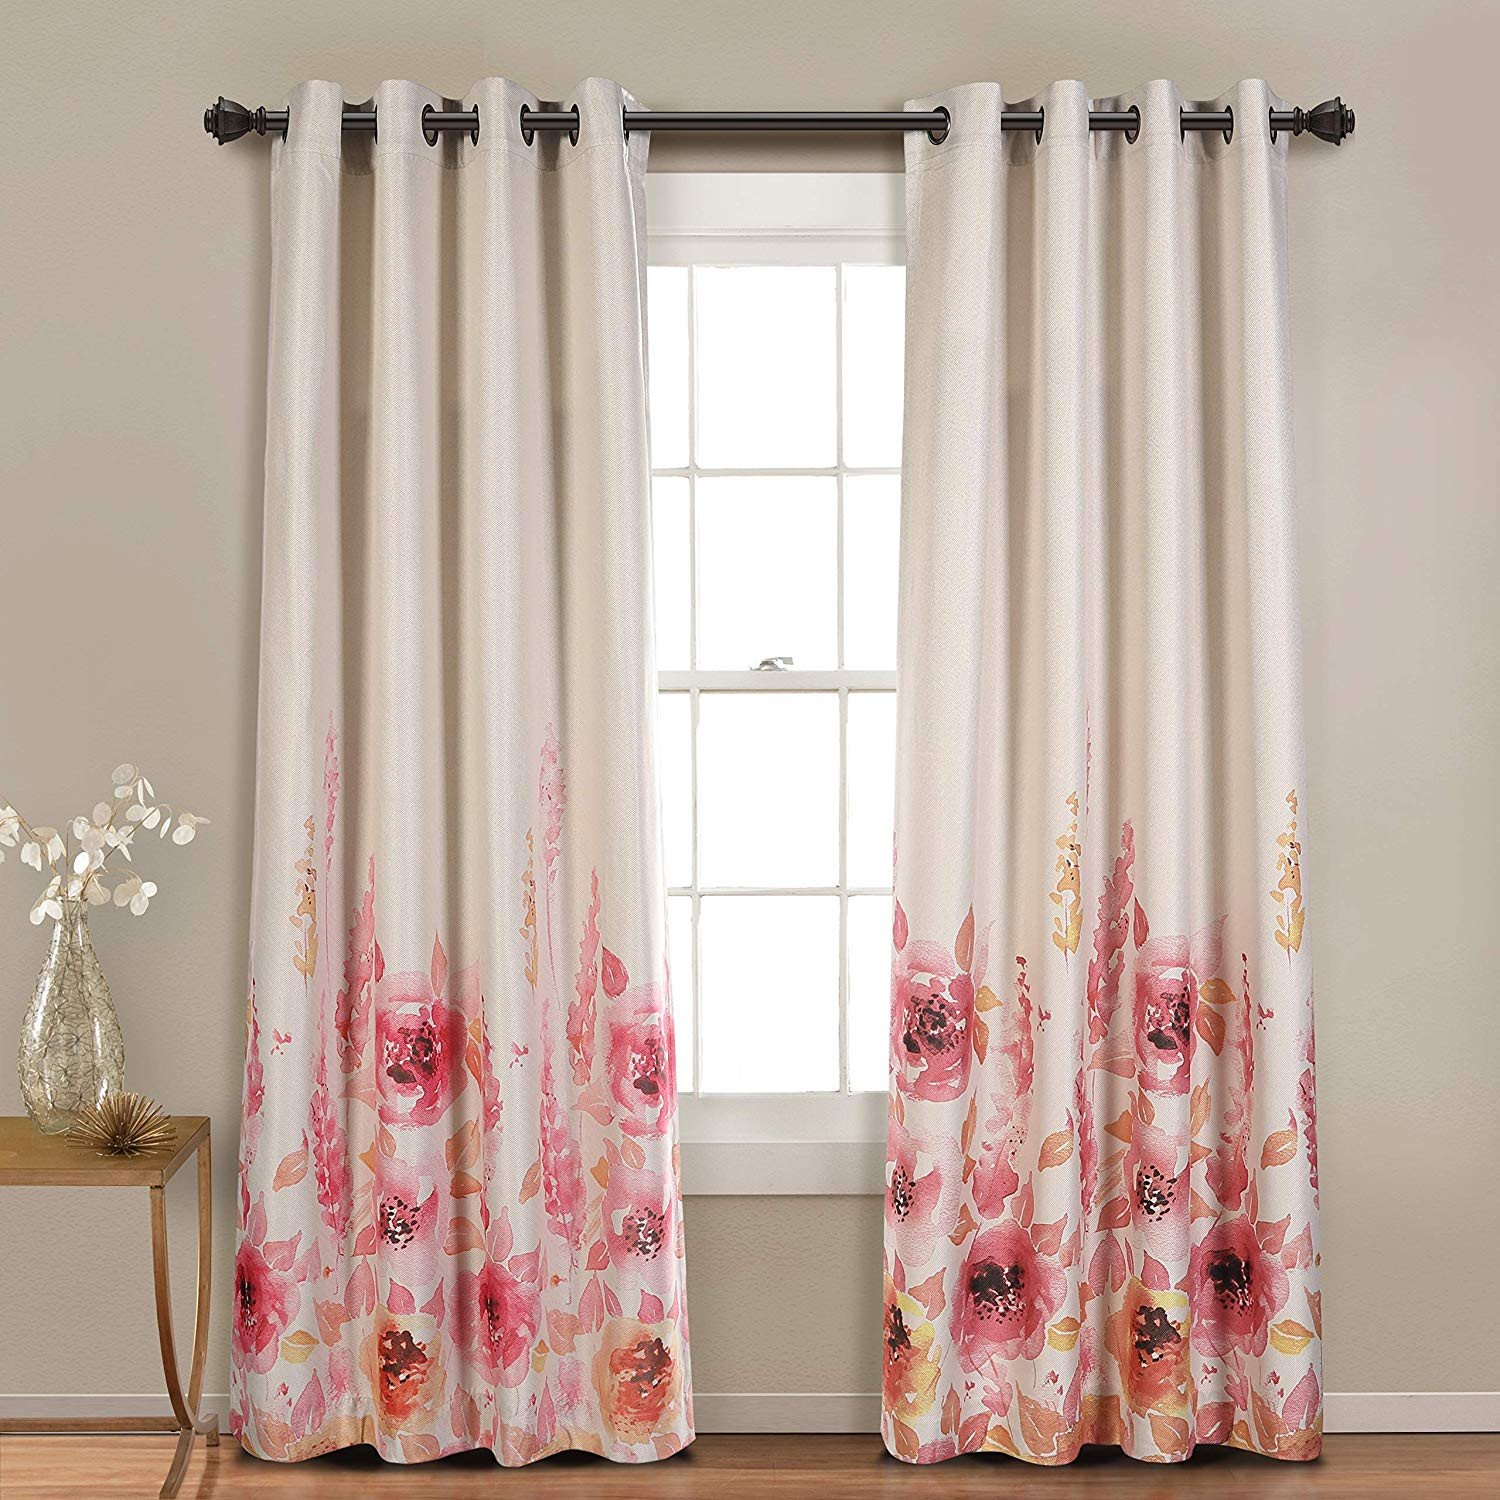 Curtains for Bedroom Windows with Designs Luxury Mysky Home Floral Design Print Grommet top thermal Insulated